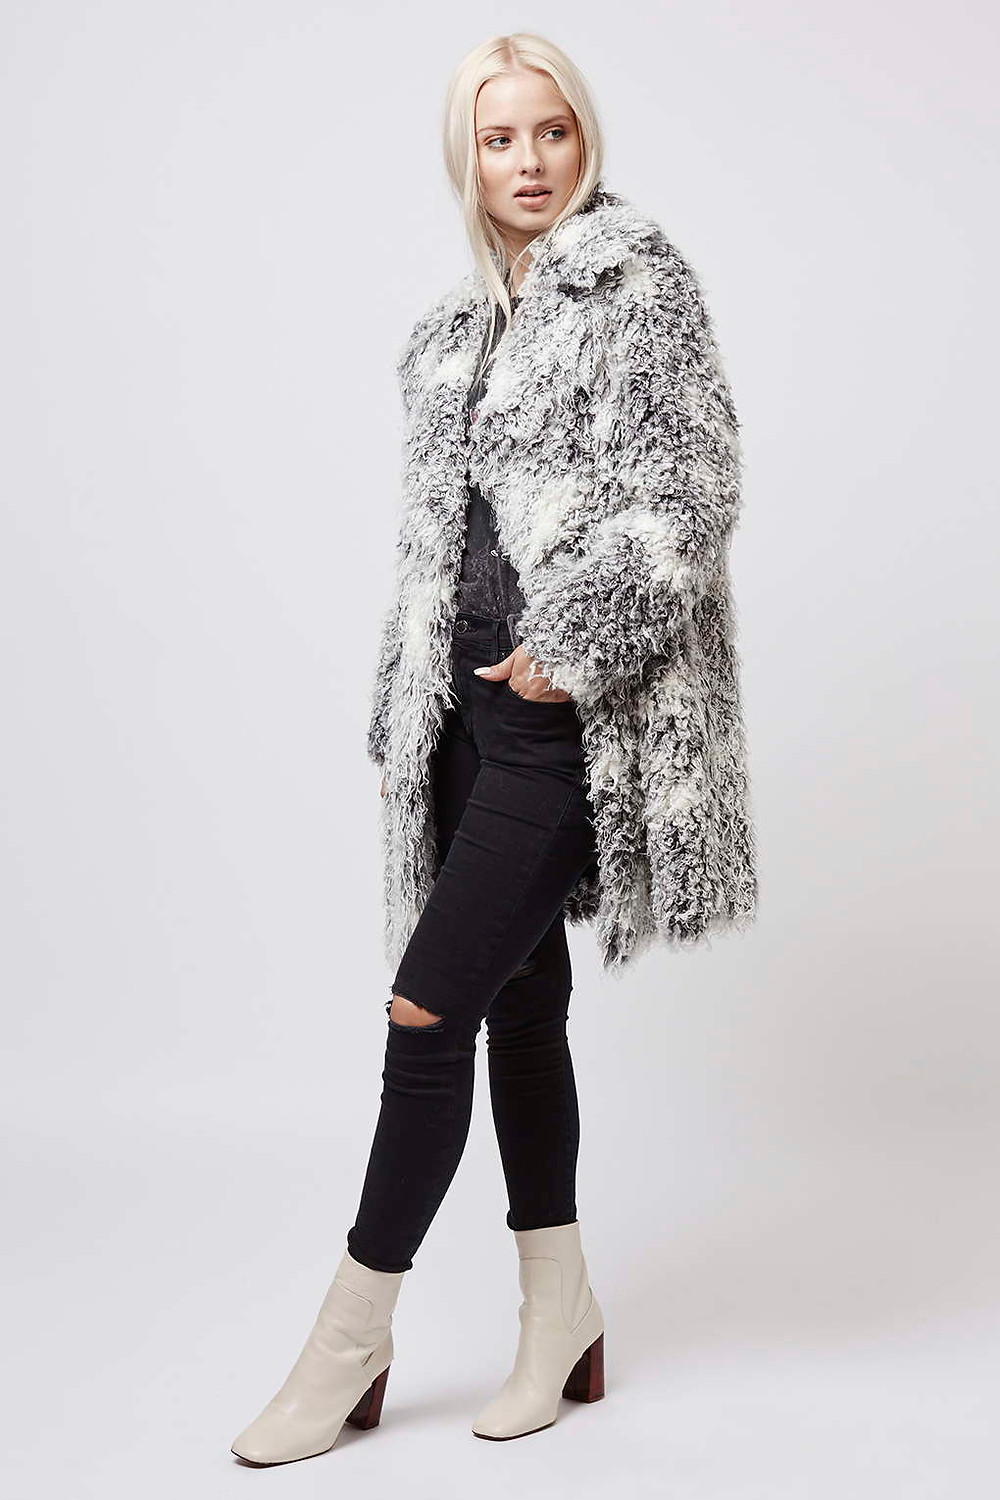 Topshop-Curly Faux Fur Double Breasted Coat-$180